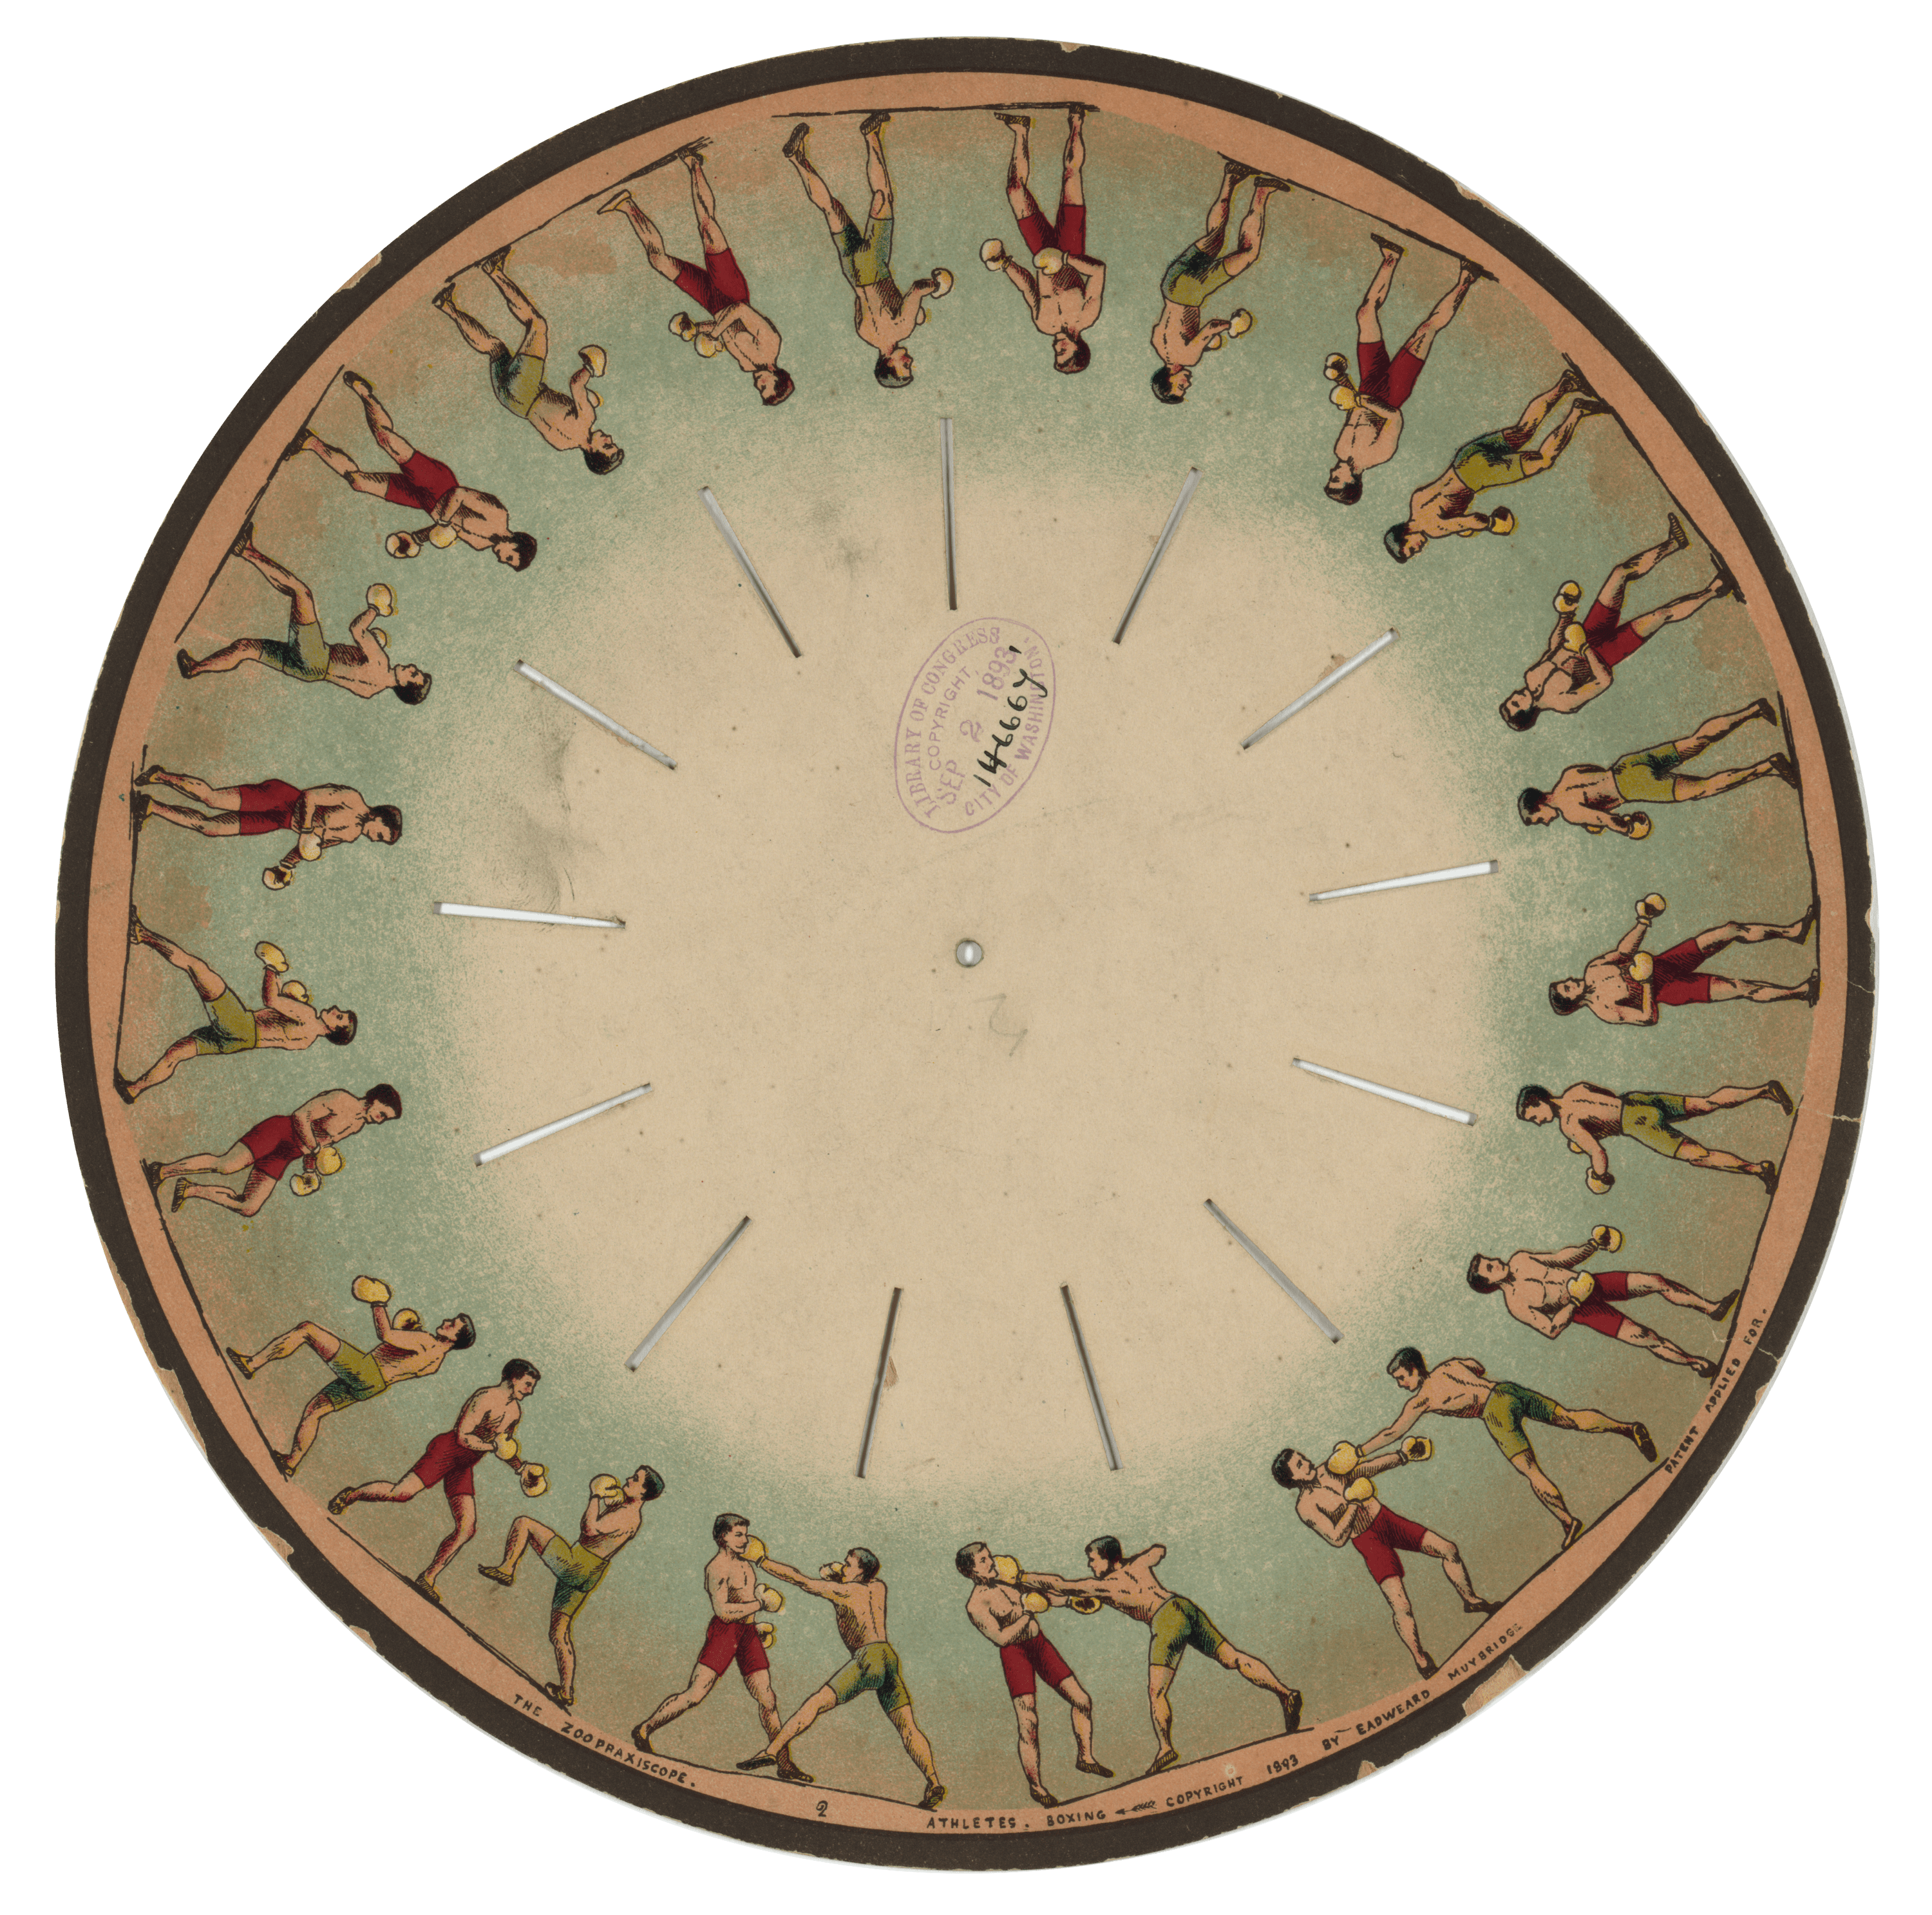 Zoopraxiscope, Athletes Boxing, 1893 — Eadweard Muybridge